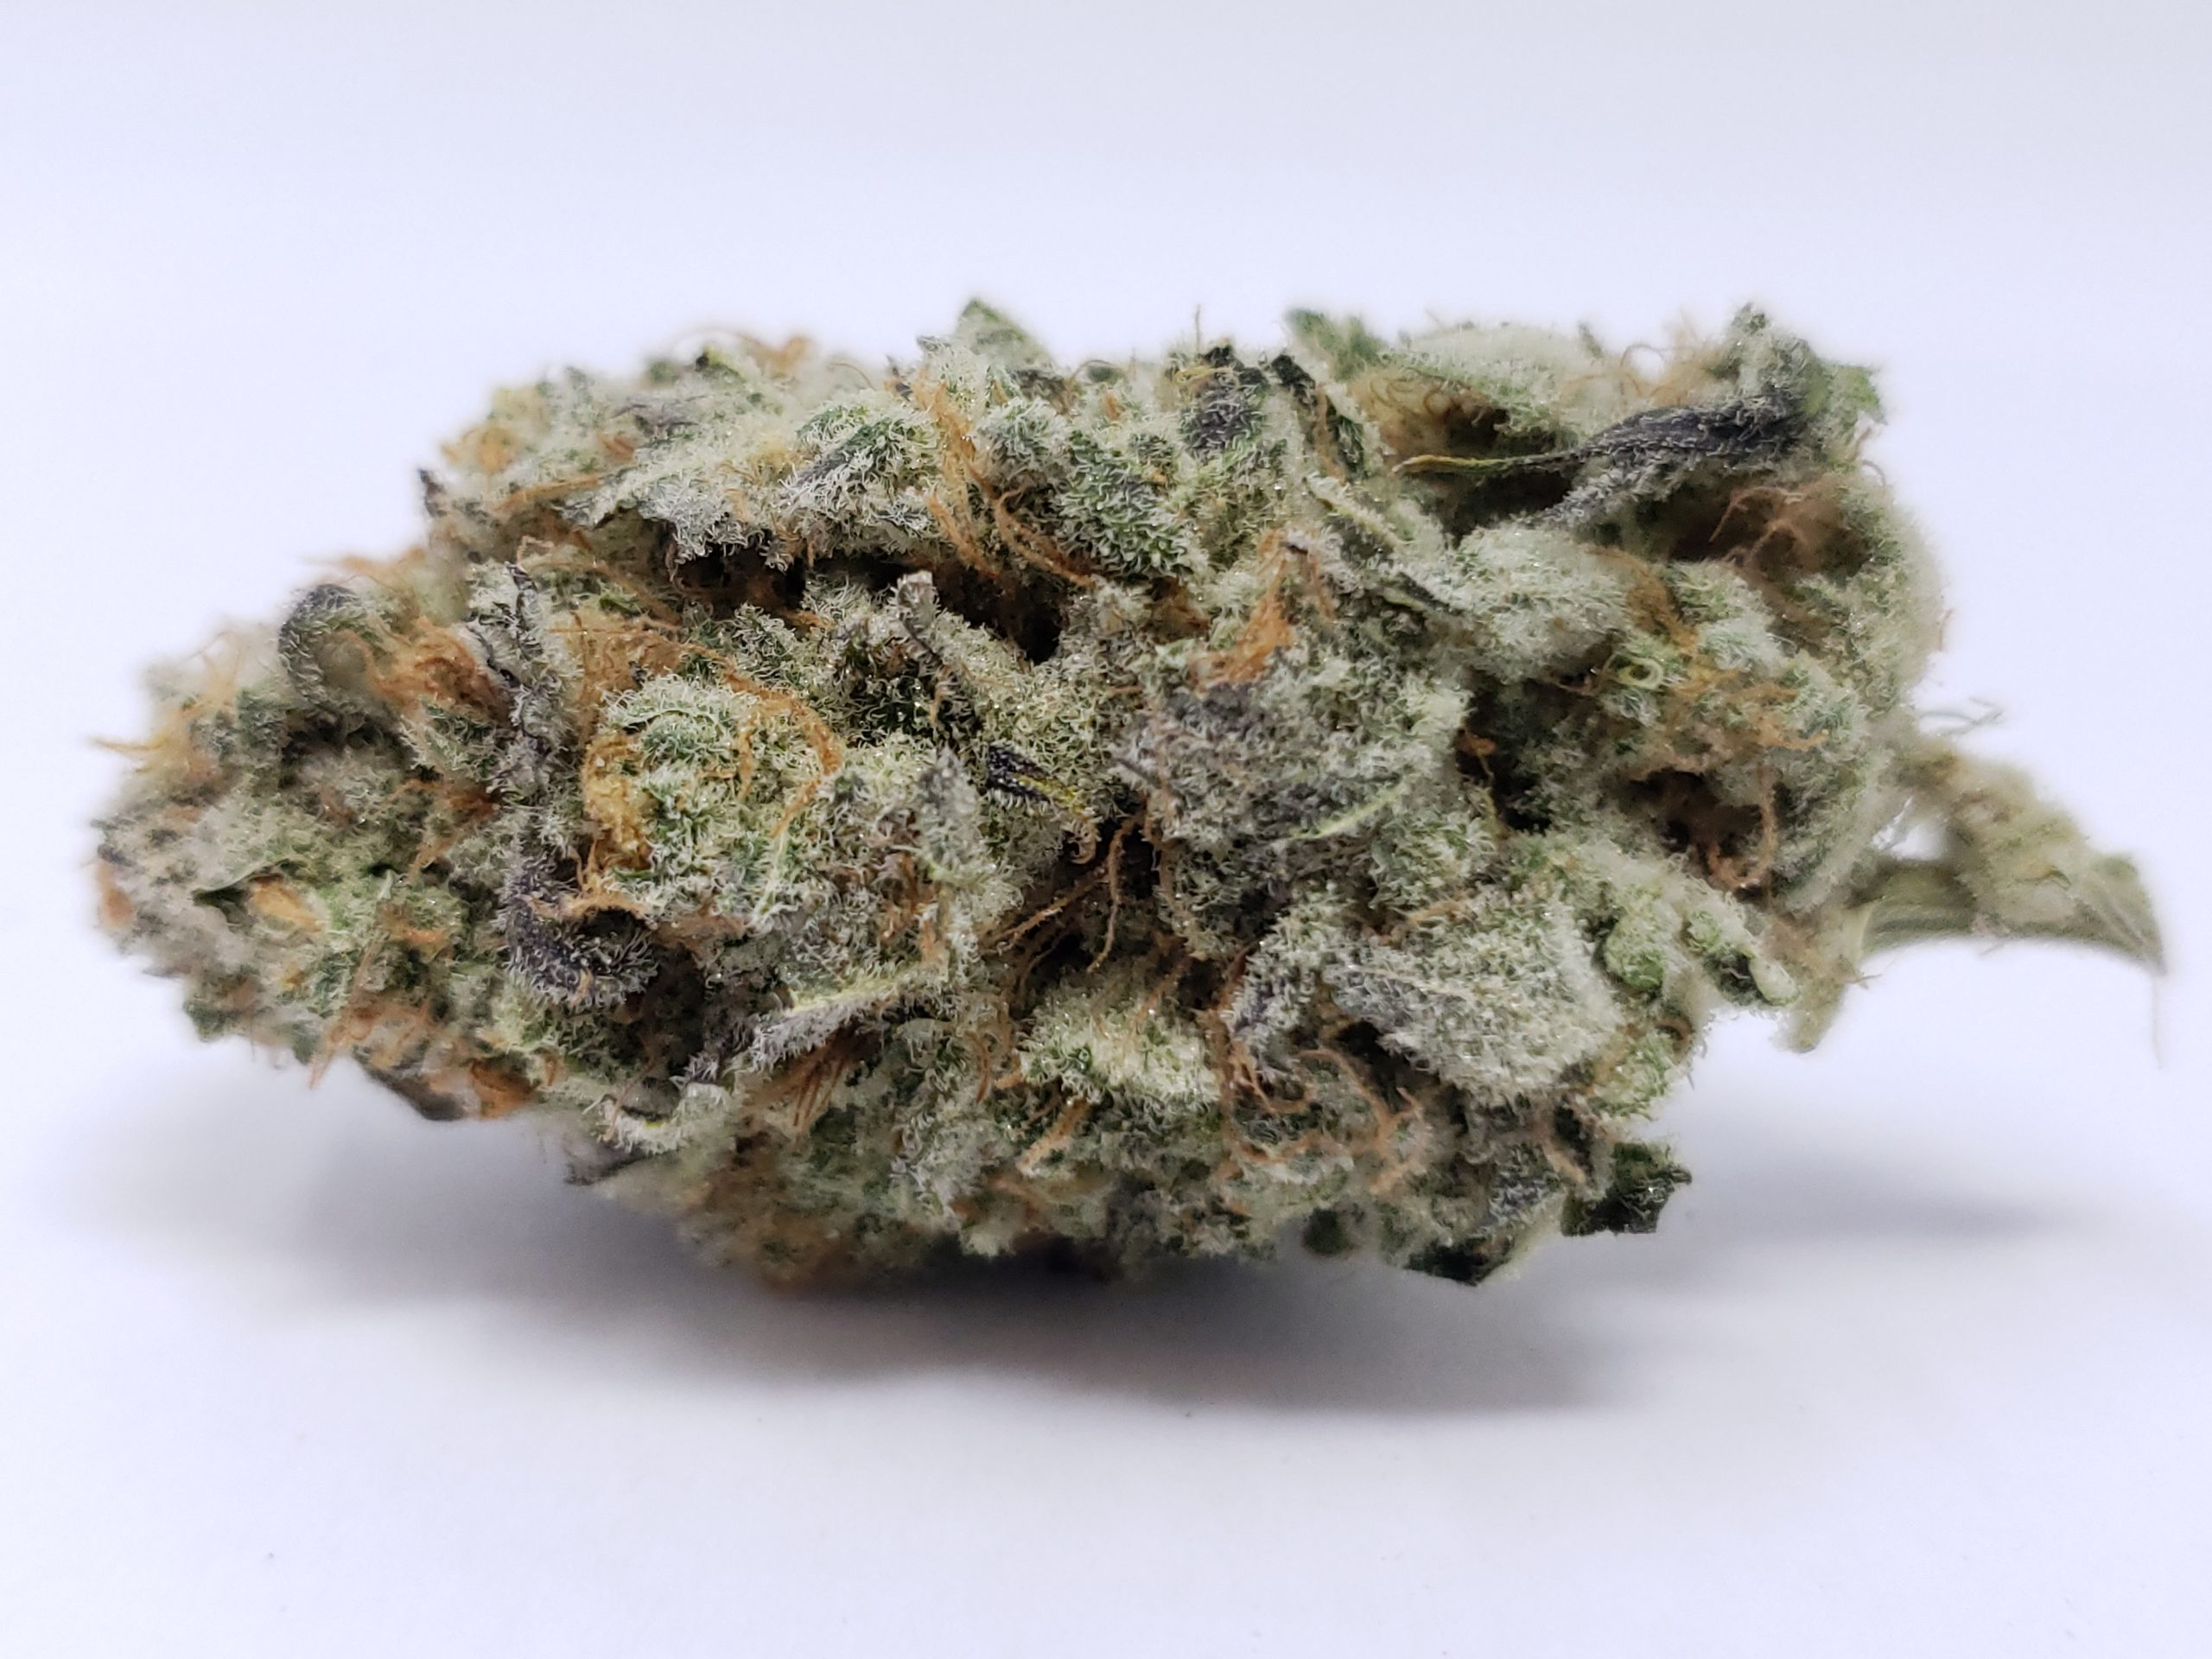 BuyWeed247 Online Dispensary